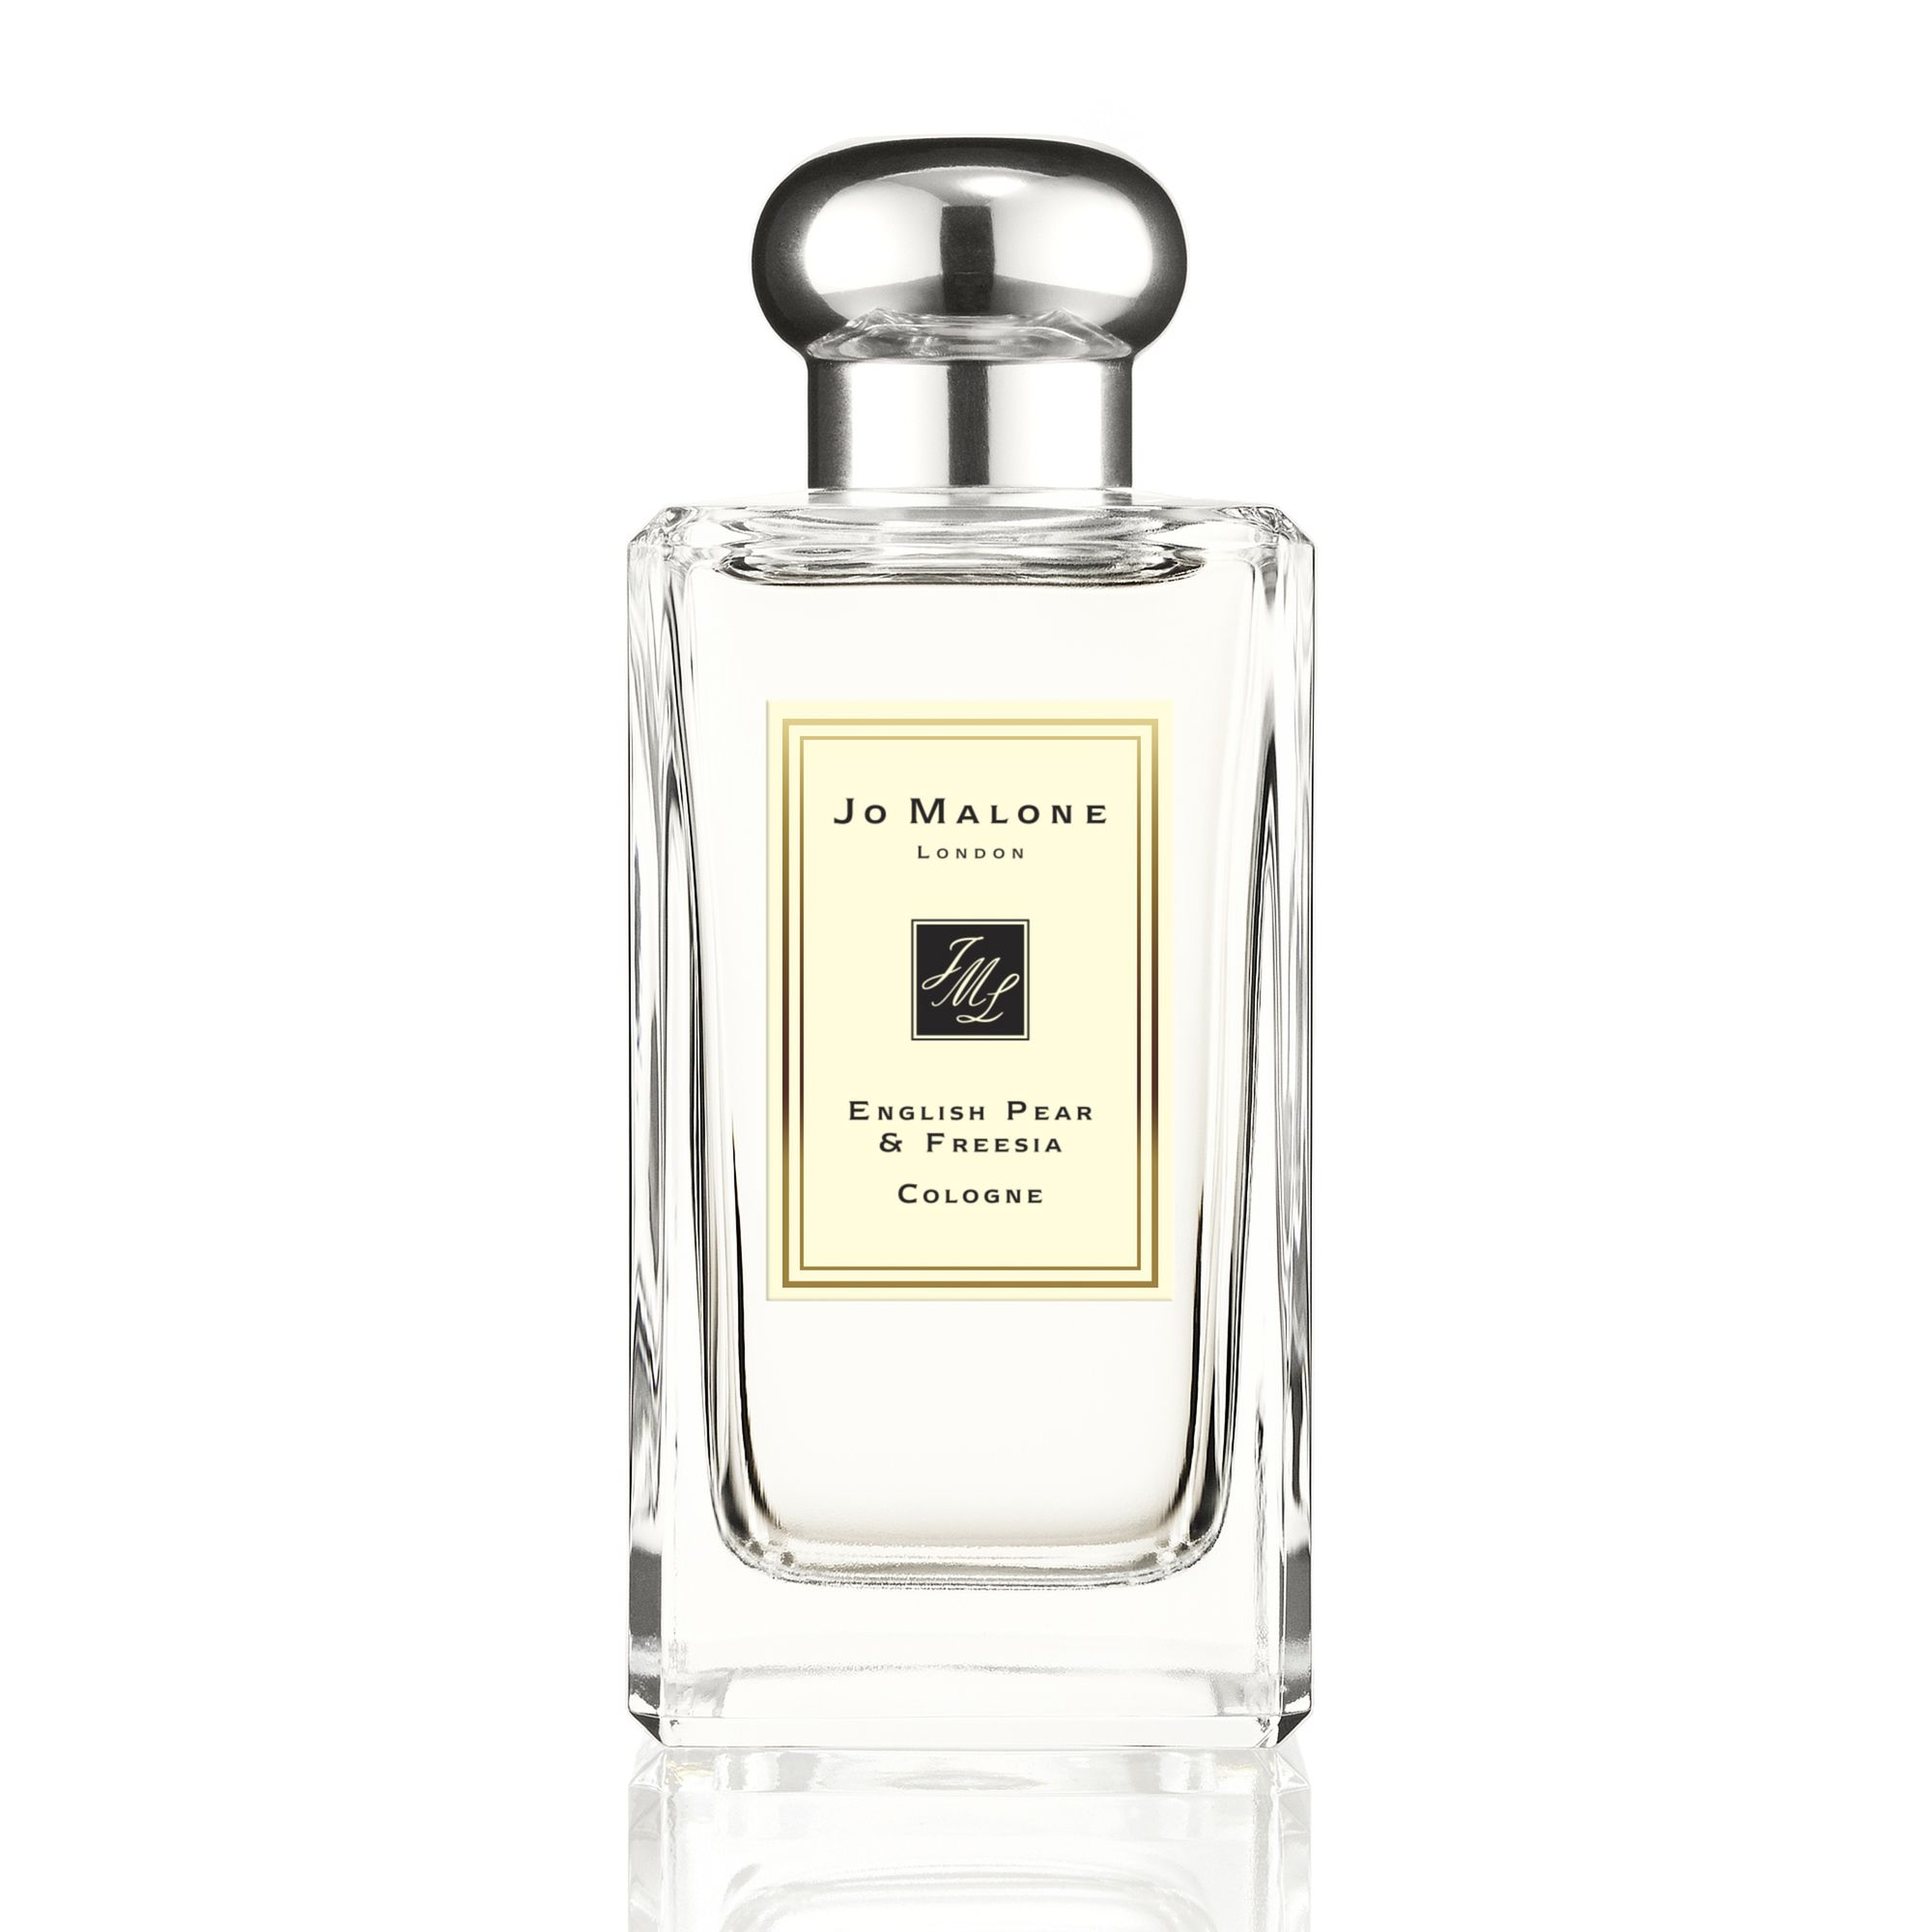 Купить Одеколон Jo Malone, Jo Malone English Pear & Freesia 100ml, Великобритания